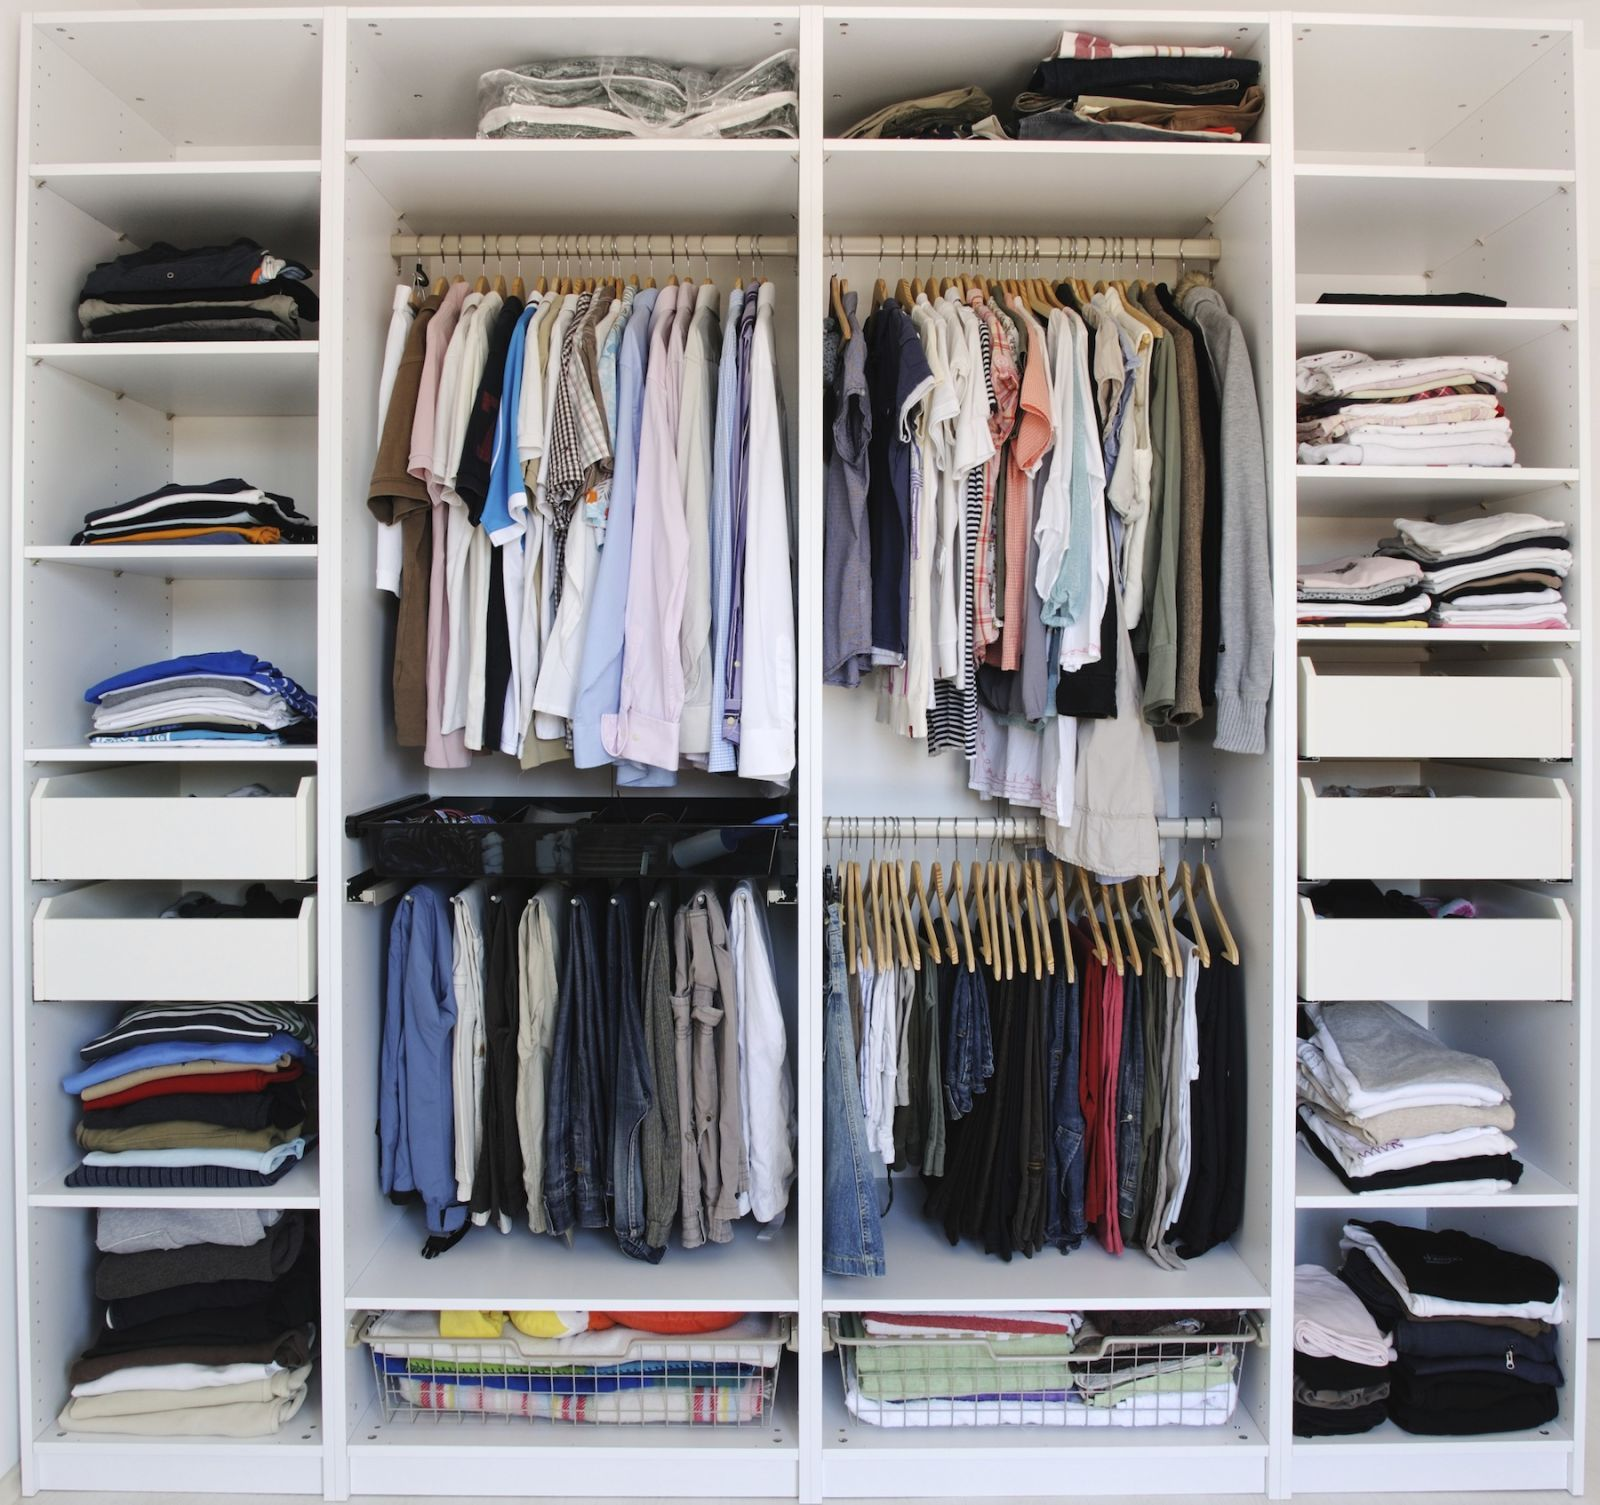 The 10 Commandments of Organizing  - ELLEDecor.com